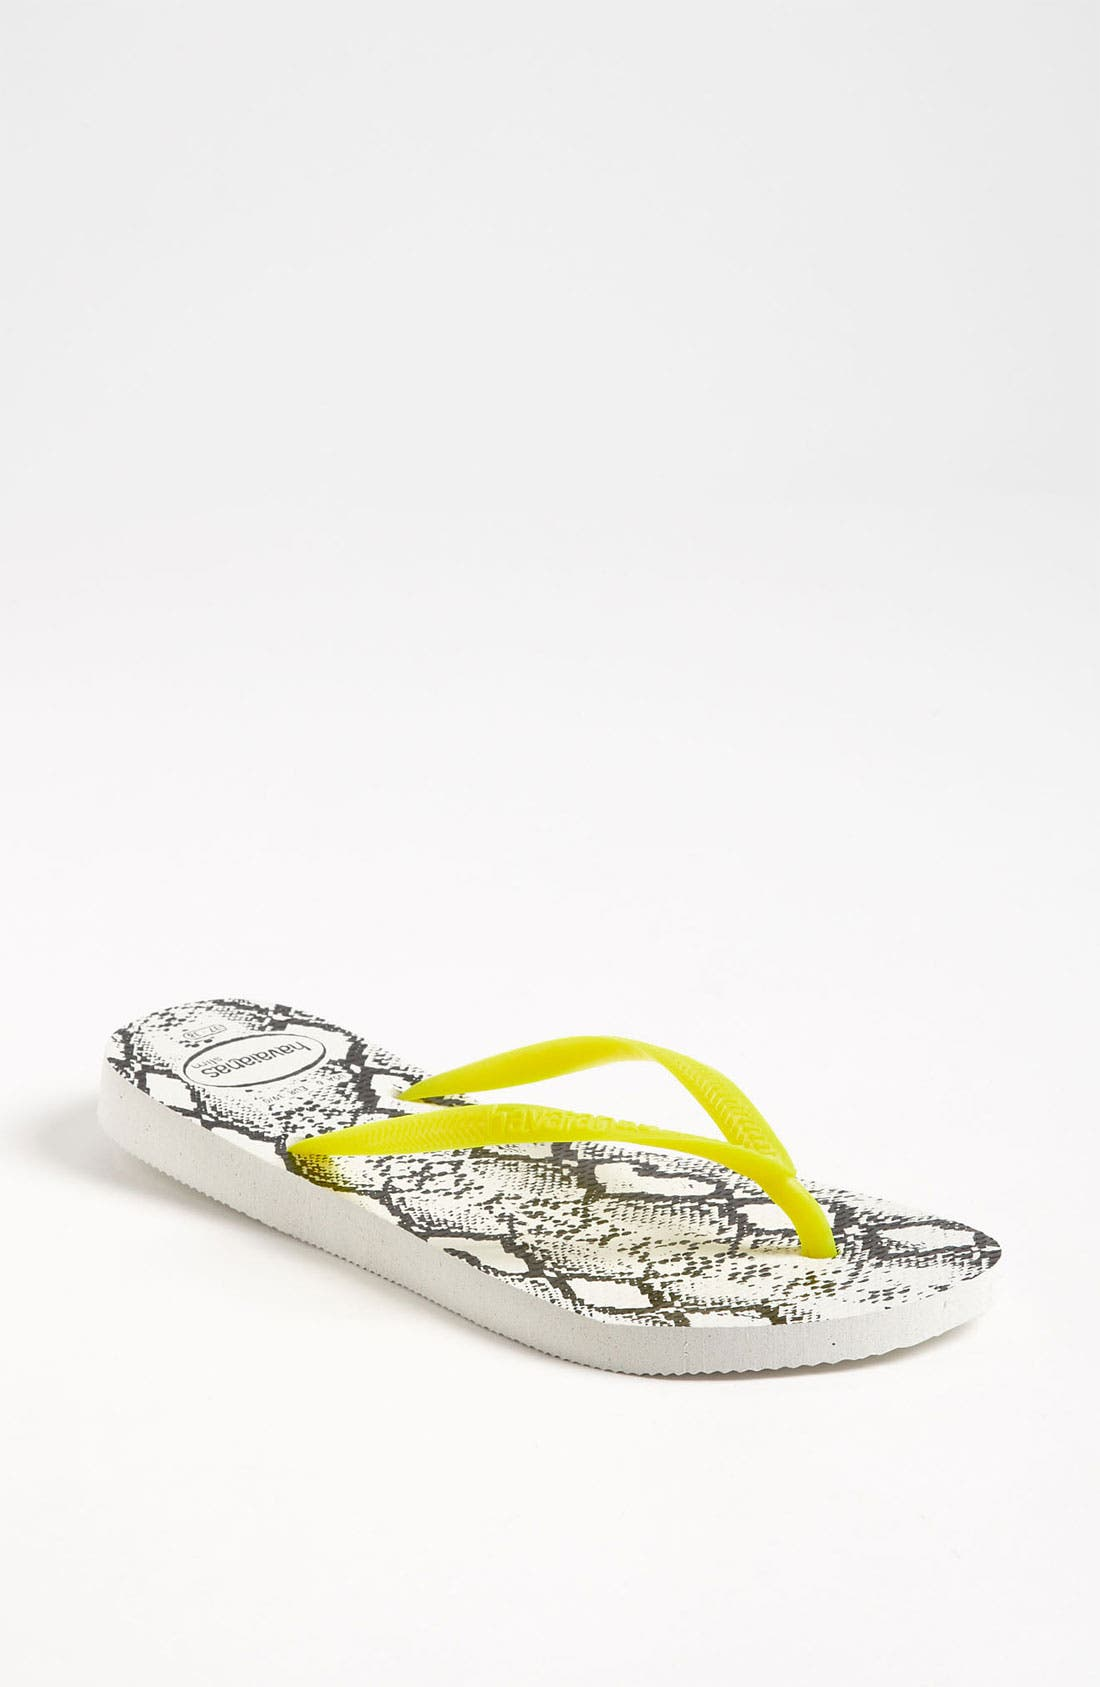 Main Image - Havaianas 'Slim Fluorescent Animal' Sandal (Women)